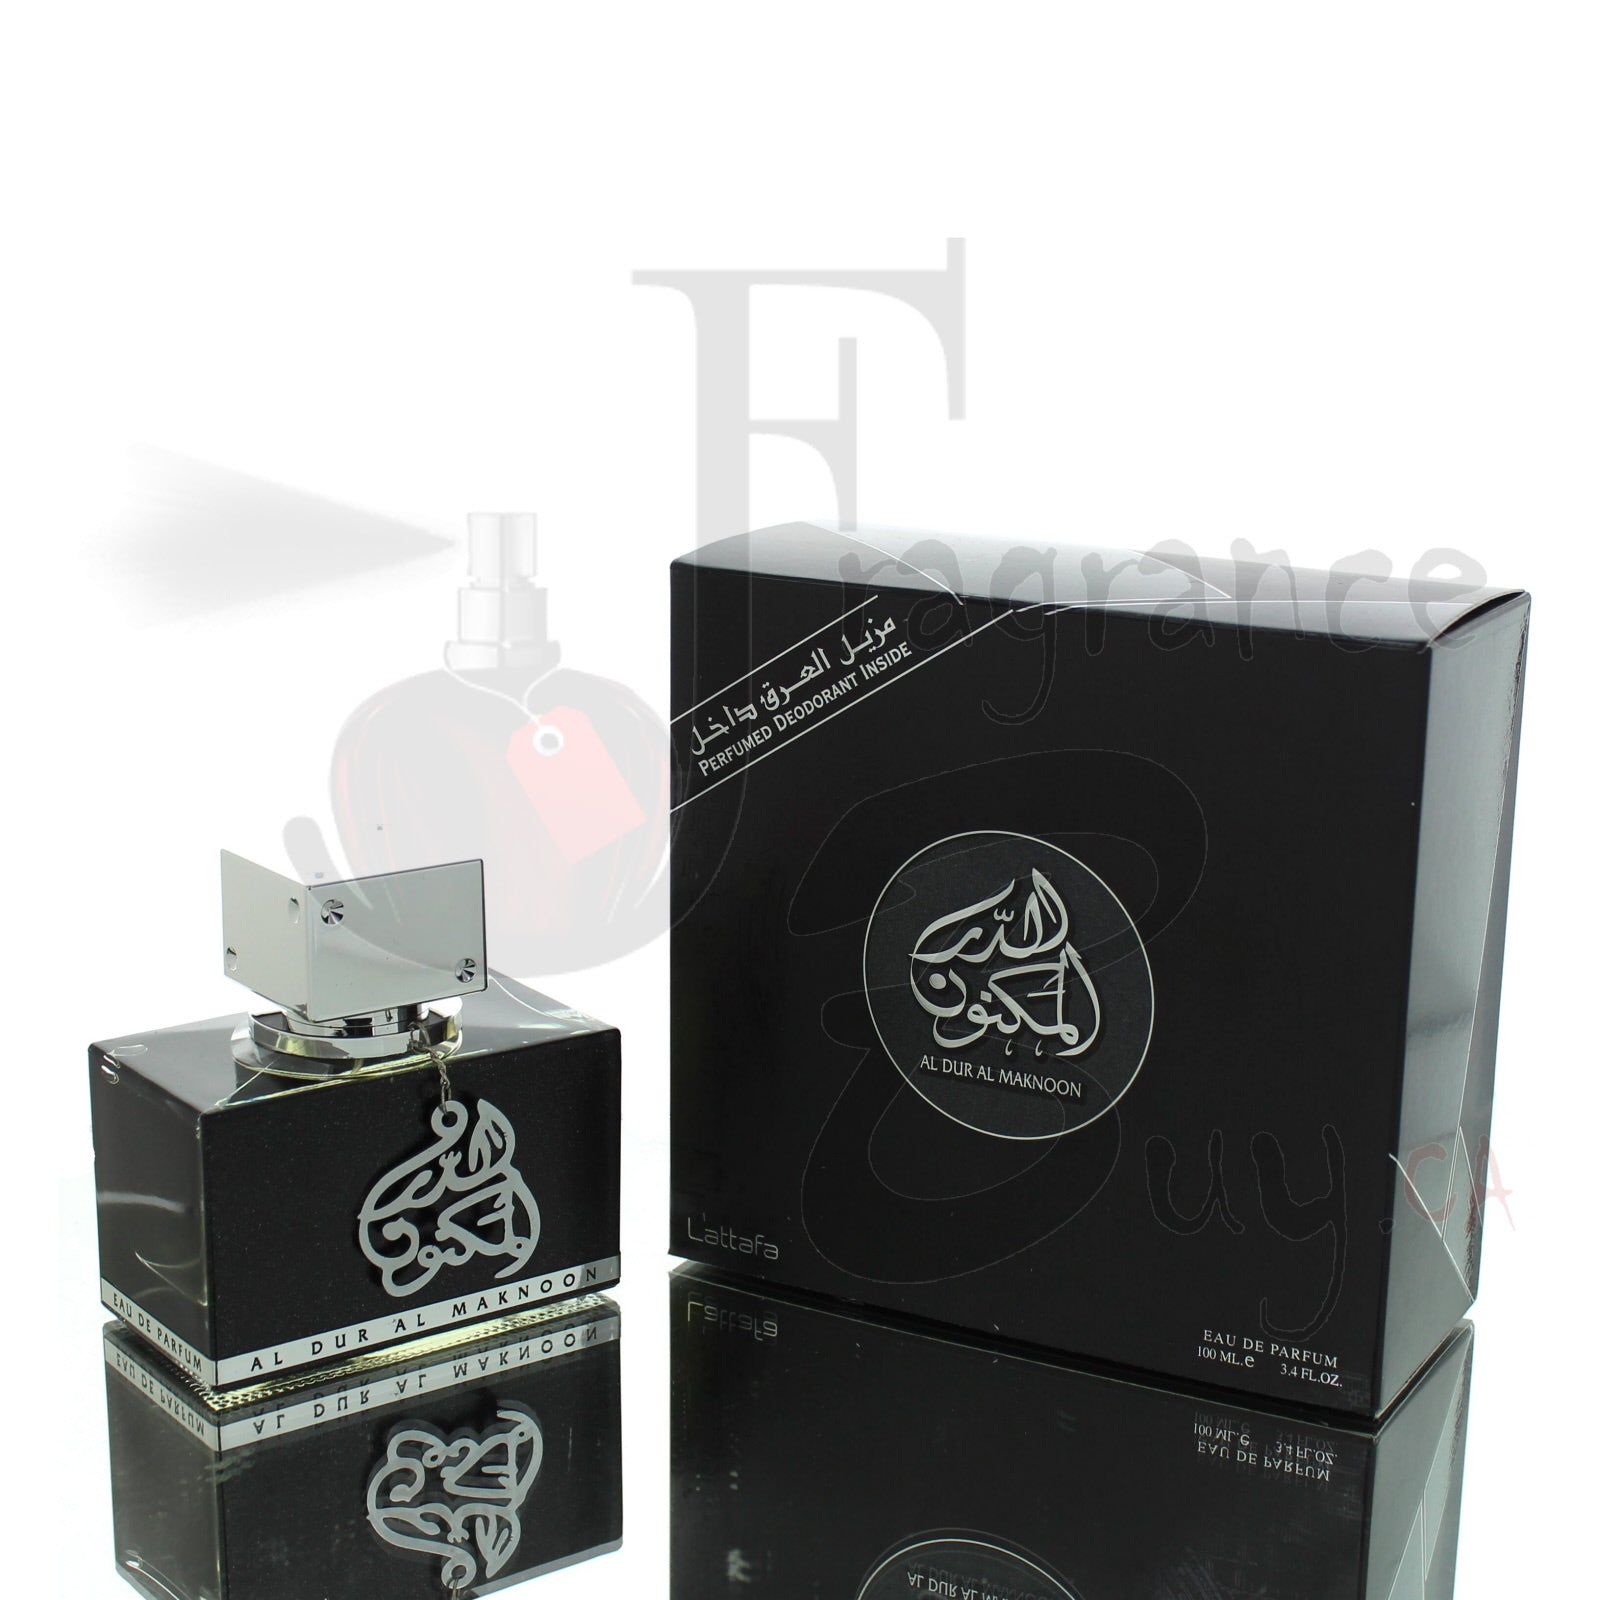 Lattafa Al Dur Al Maknoon Silver (Smoky Aventus Twist) For Man/Woman